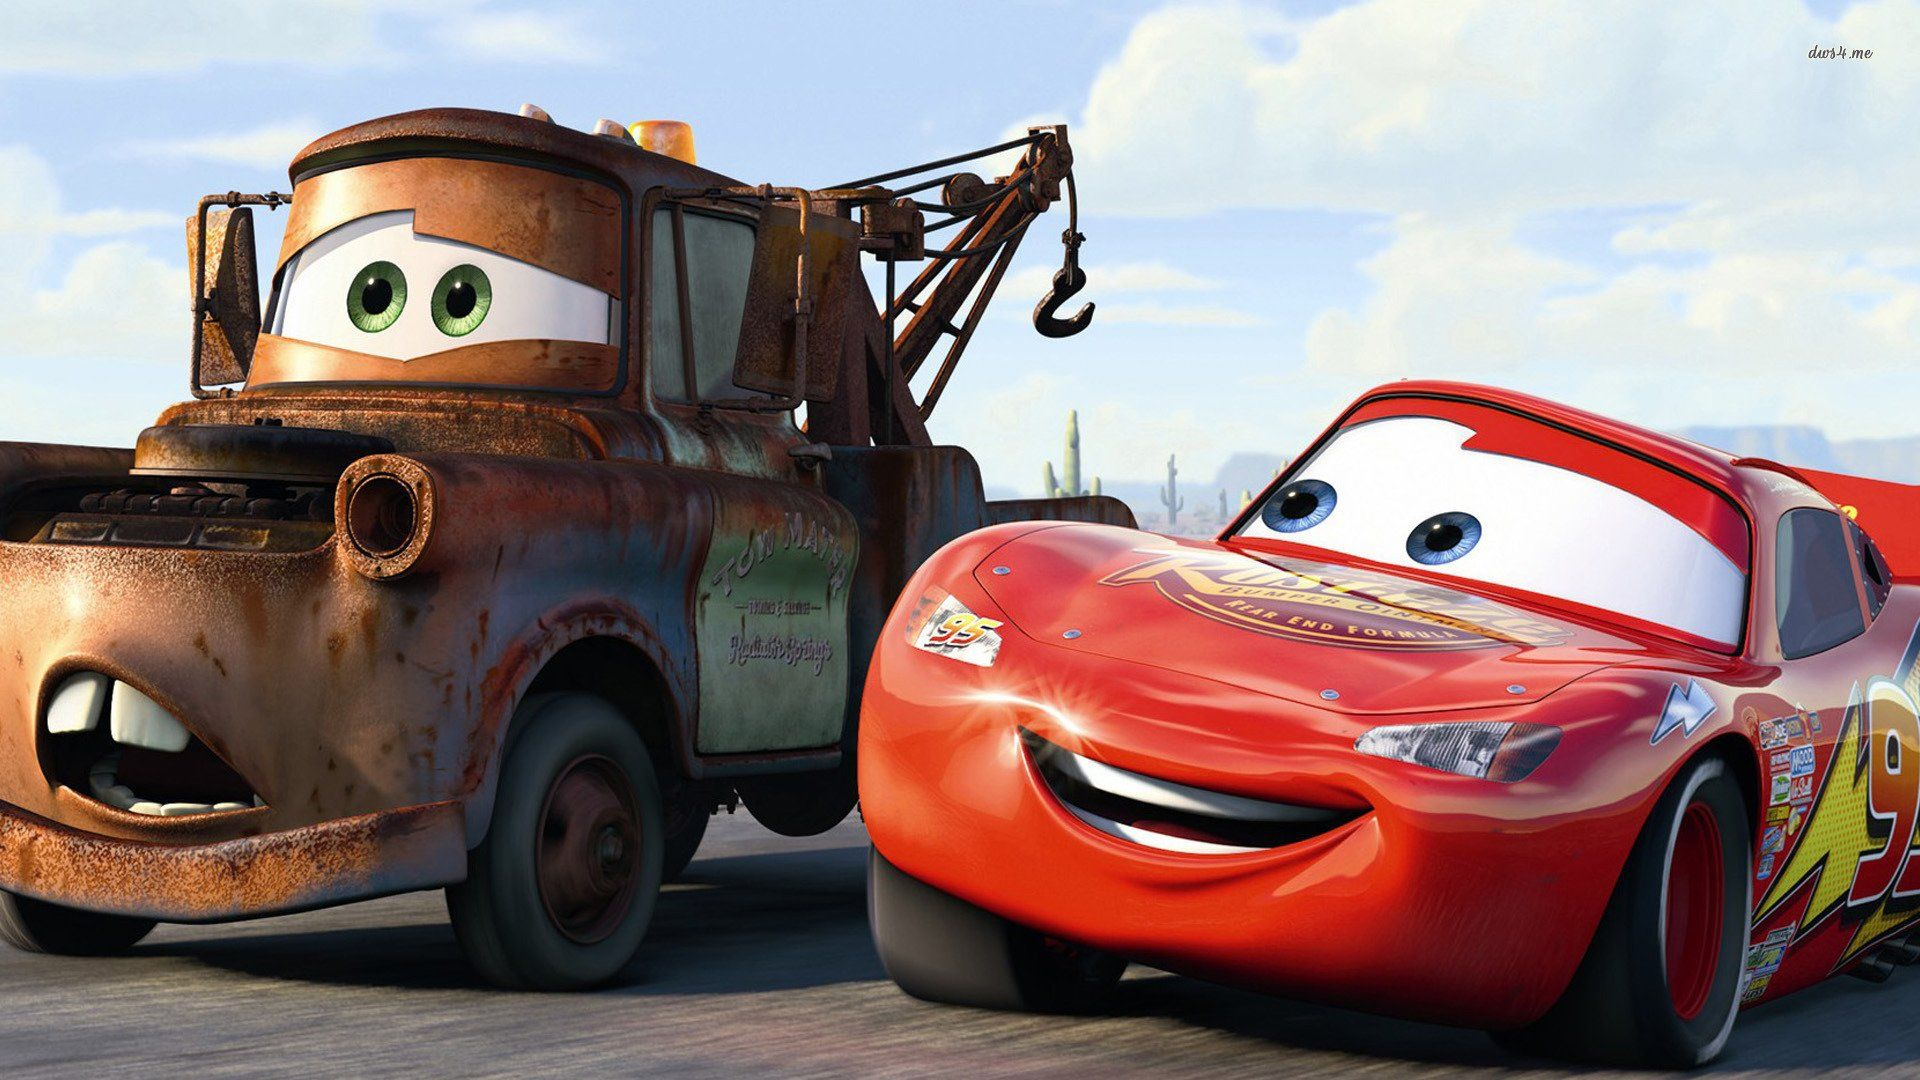 Free Download Amazing Lightning Mcqueen Images